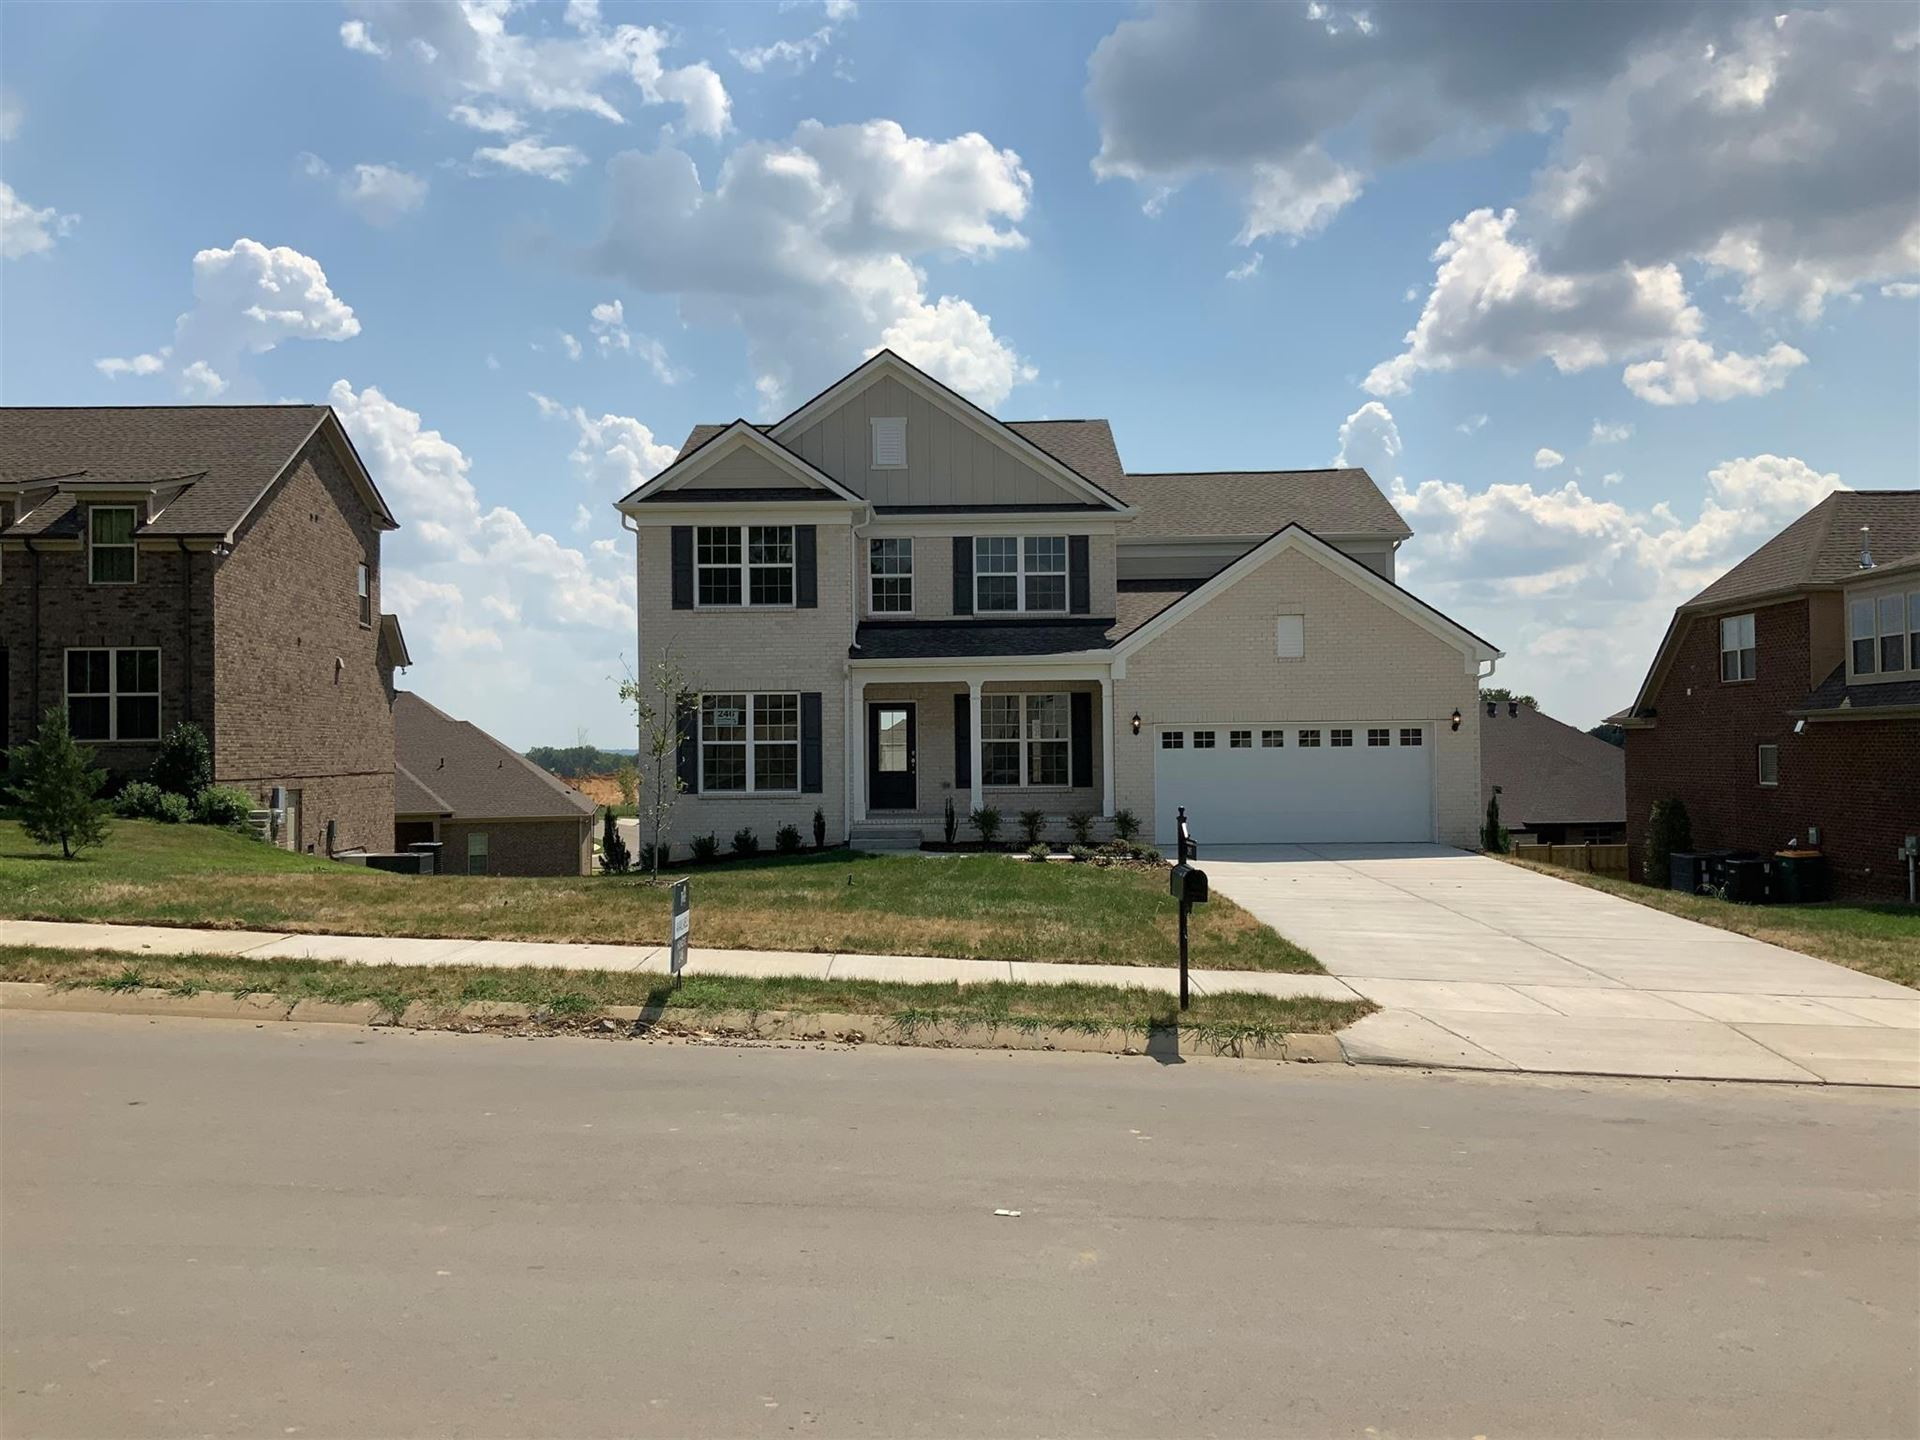 Photo of 2955 Stewart Campbell Pointe, Spring Hill, TN 37174 (MLS # 2155250)